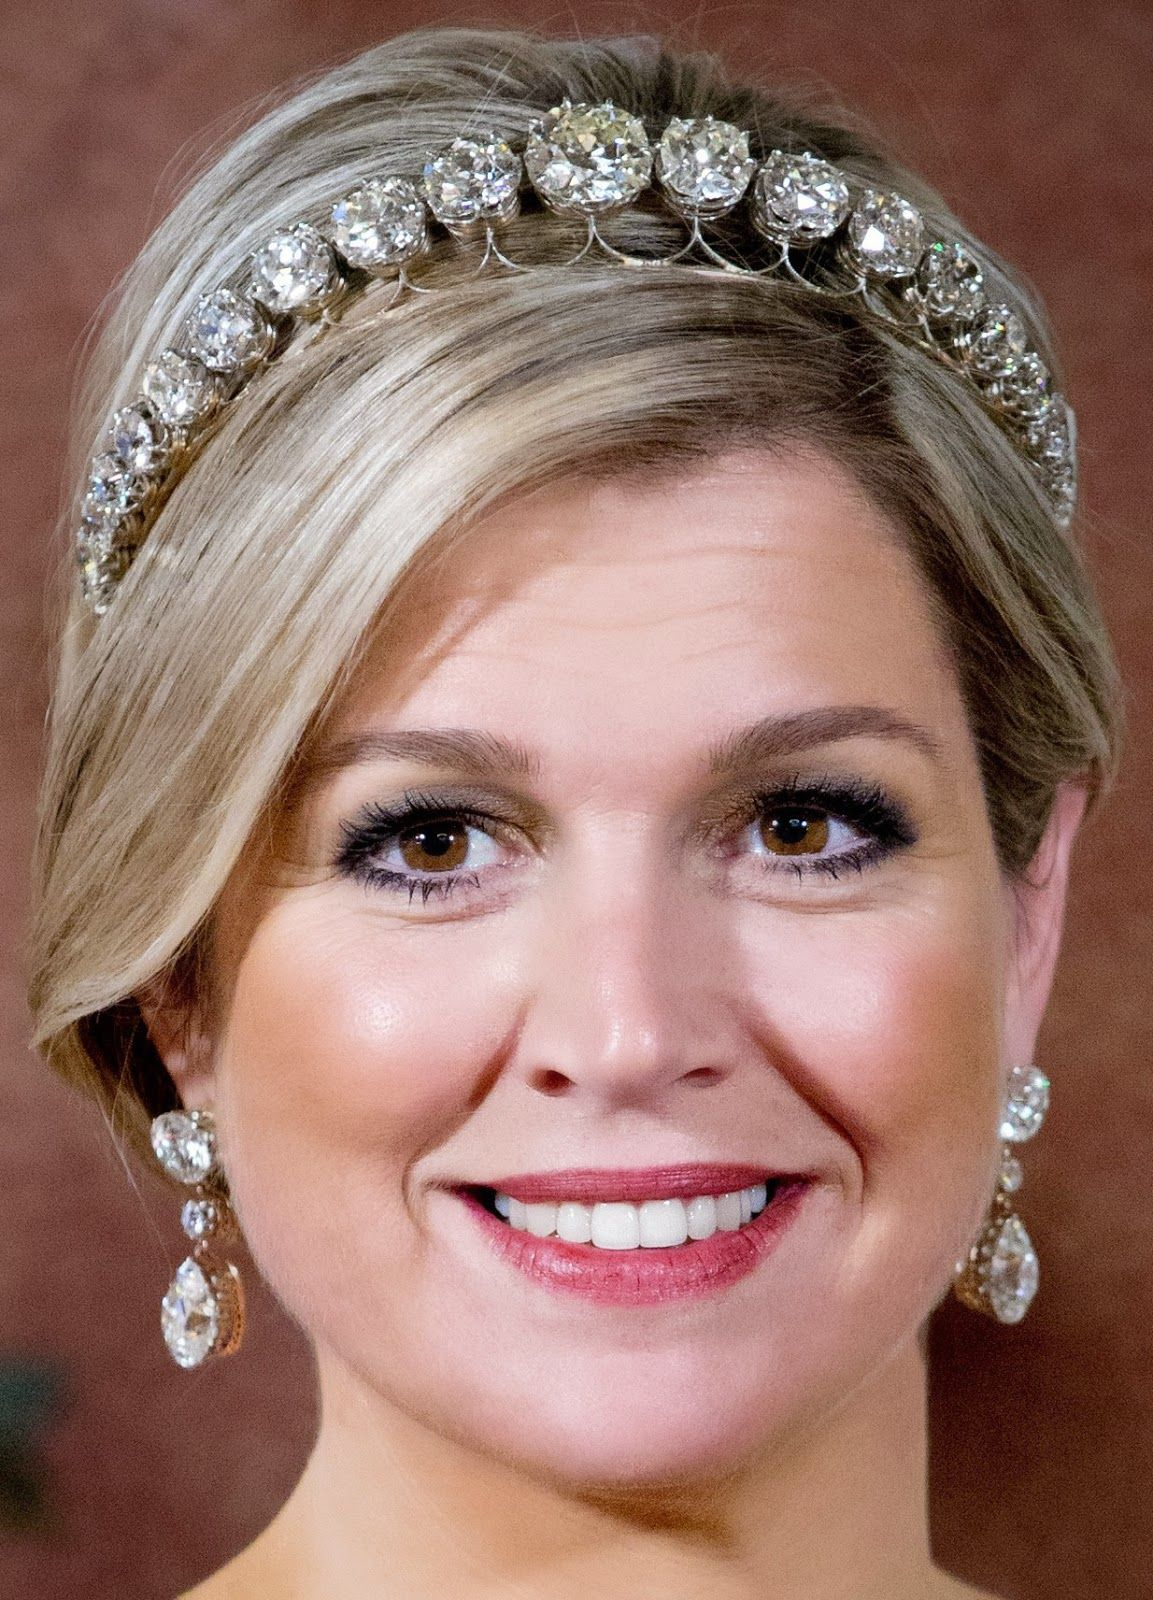 Tiara Mania Diamond Bandeau Queen Maxima Creation This Tiara Was Made In 1937 Using Diamonds Taken From A Riviere Of 34 Rose Cut Diamonds That Was A